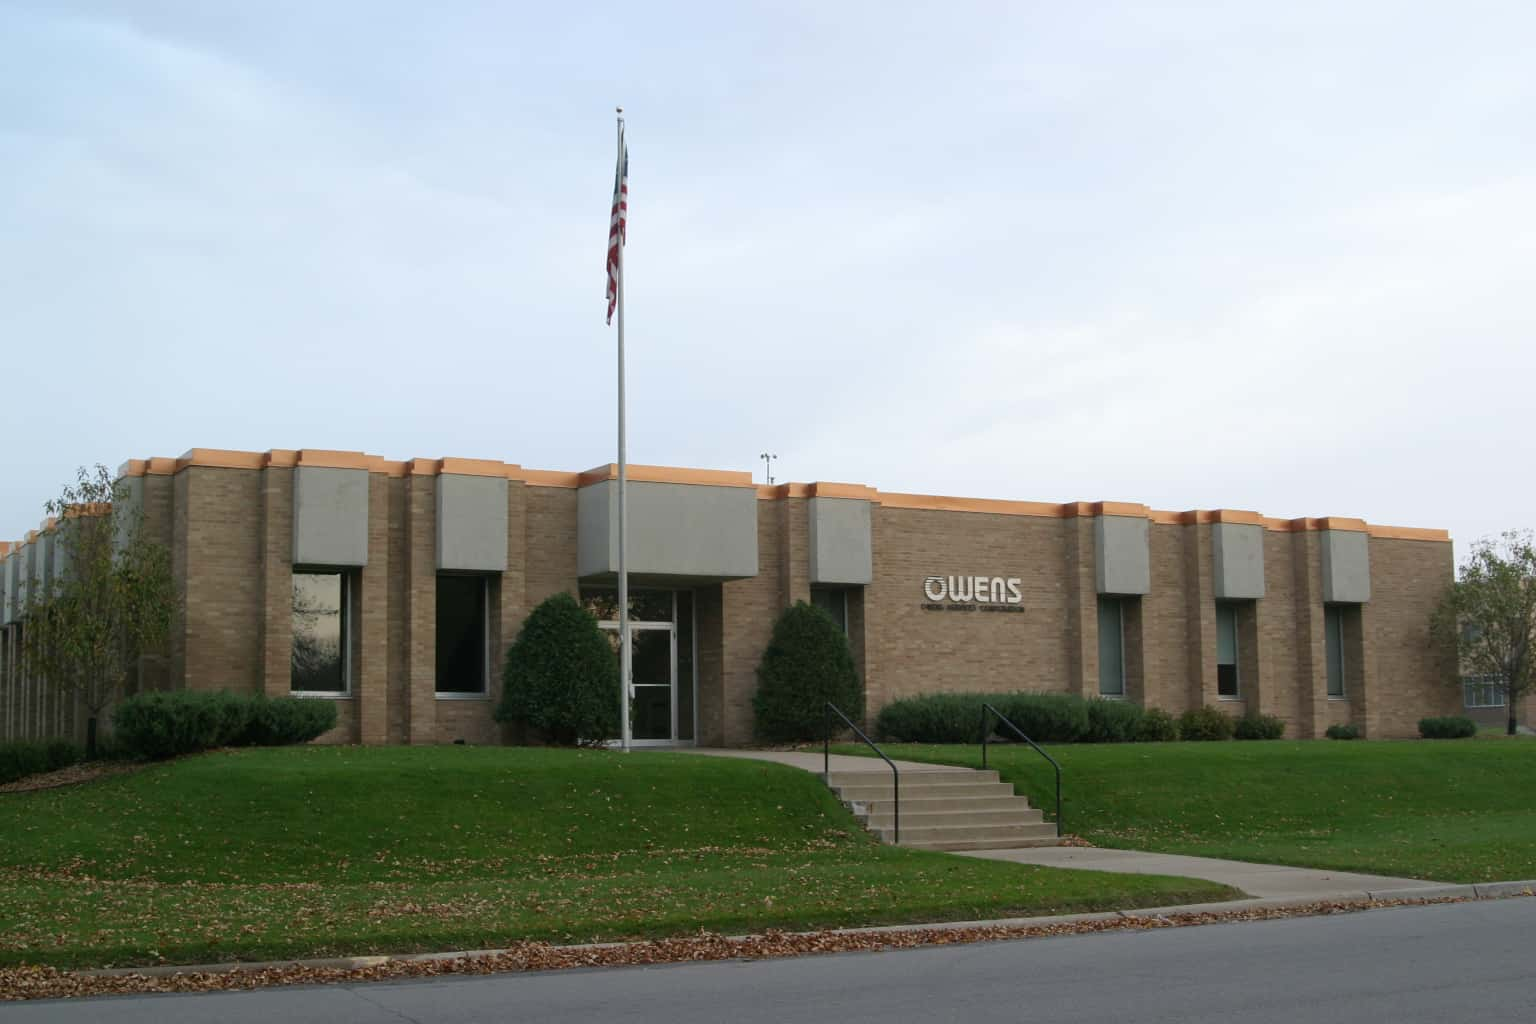 The Owens Companies headquarters in Bloomington, MN